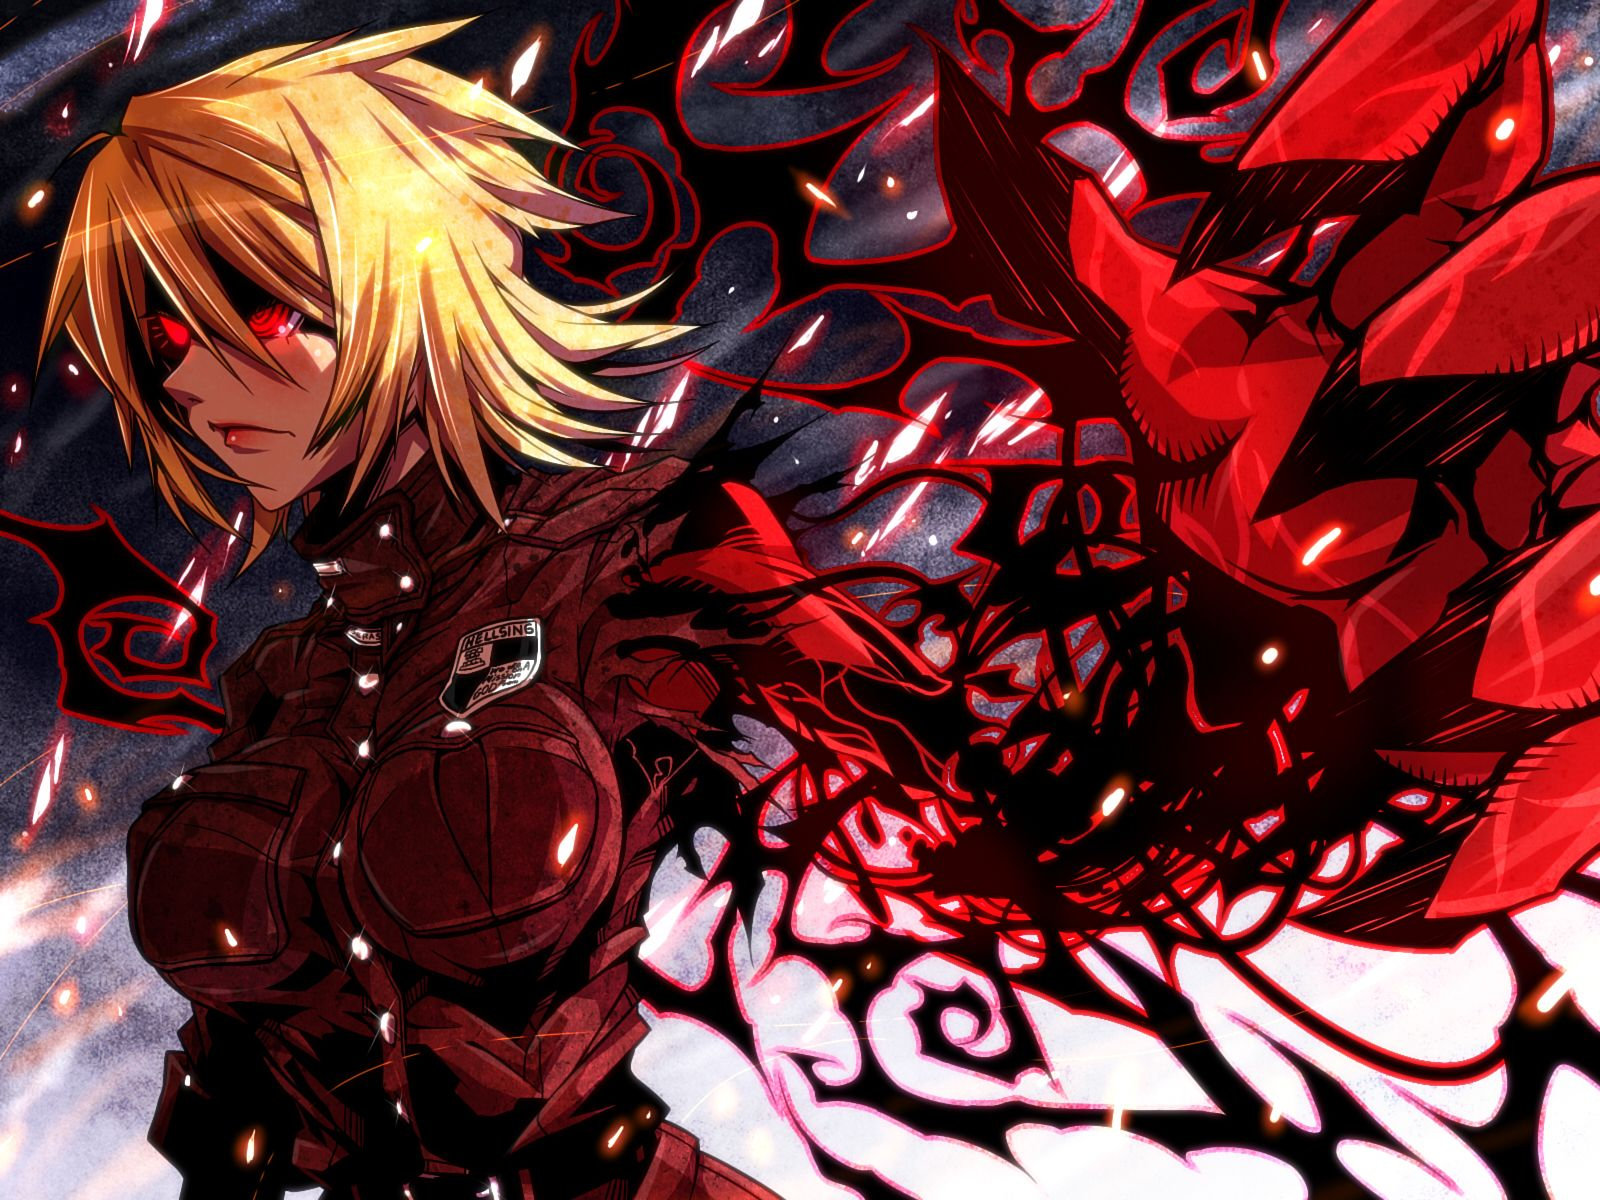 2560x1440 Download Wallpaper Hellsing Alucard Art Hd Background